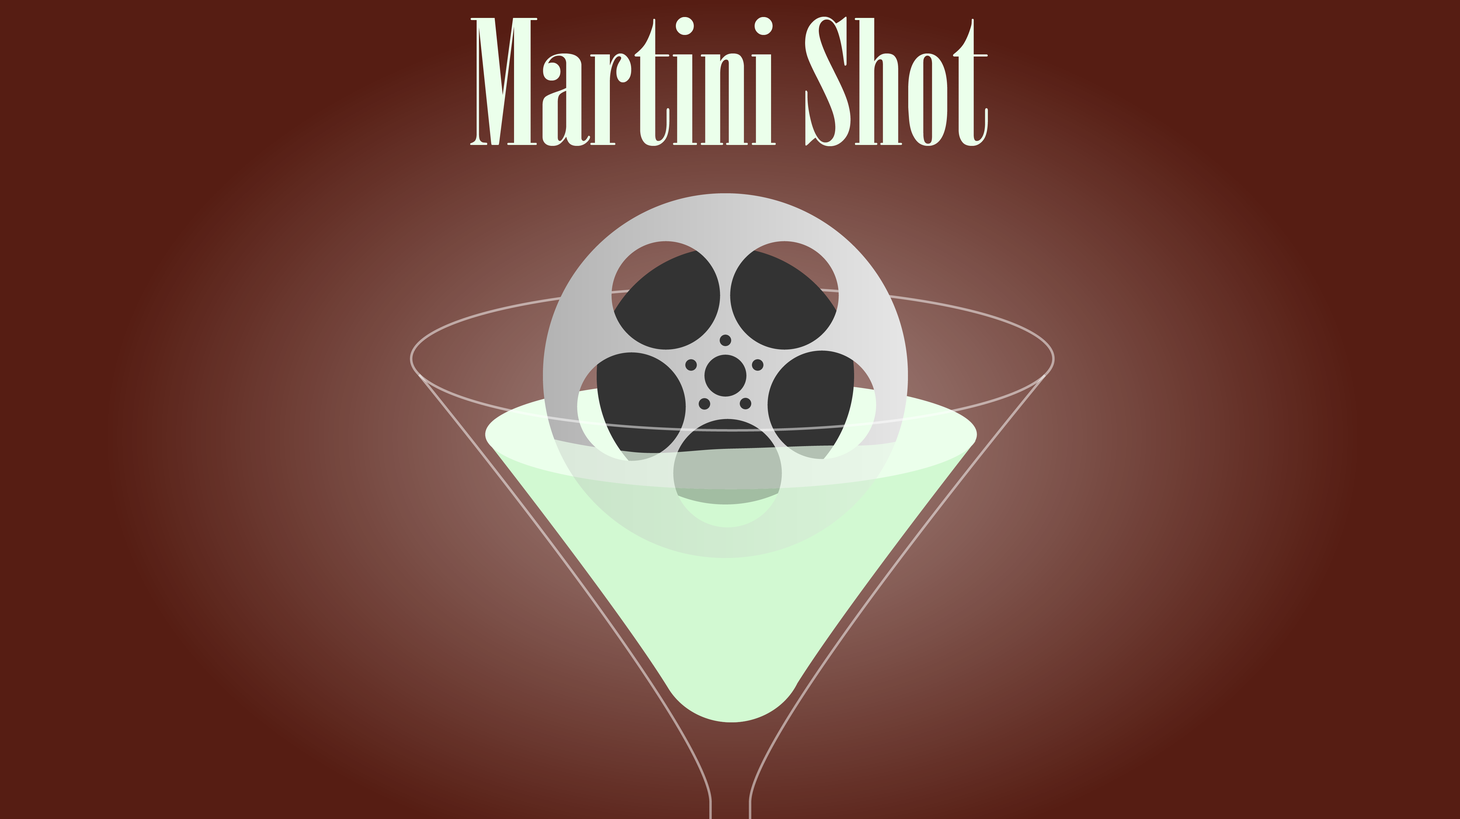 This is Rob Long, and on today's Martini Shot, I talk about a complicated moment from an old movie where they use a word that we don't use much these days in a way that is actually kind of funny. Yeah, I think that's vague enough.